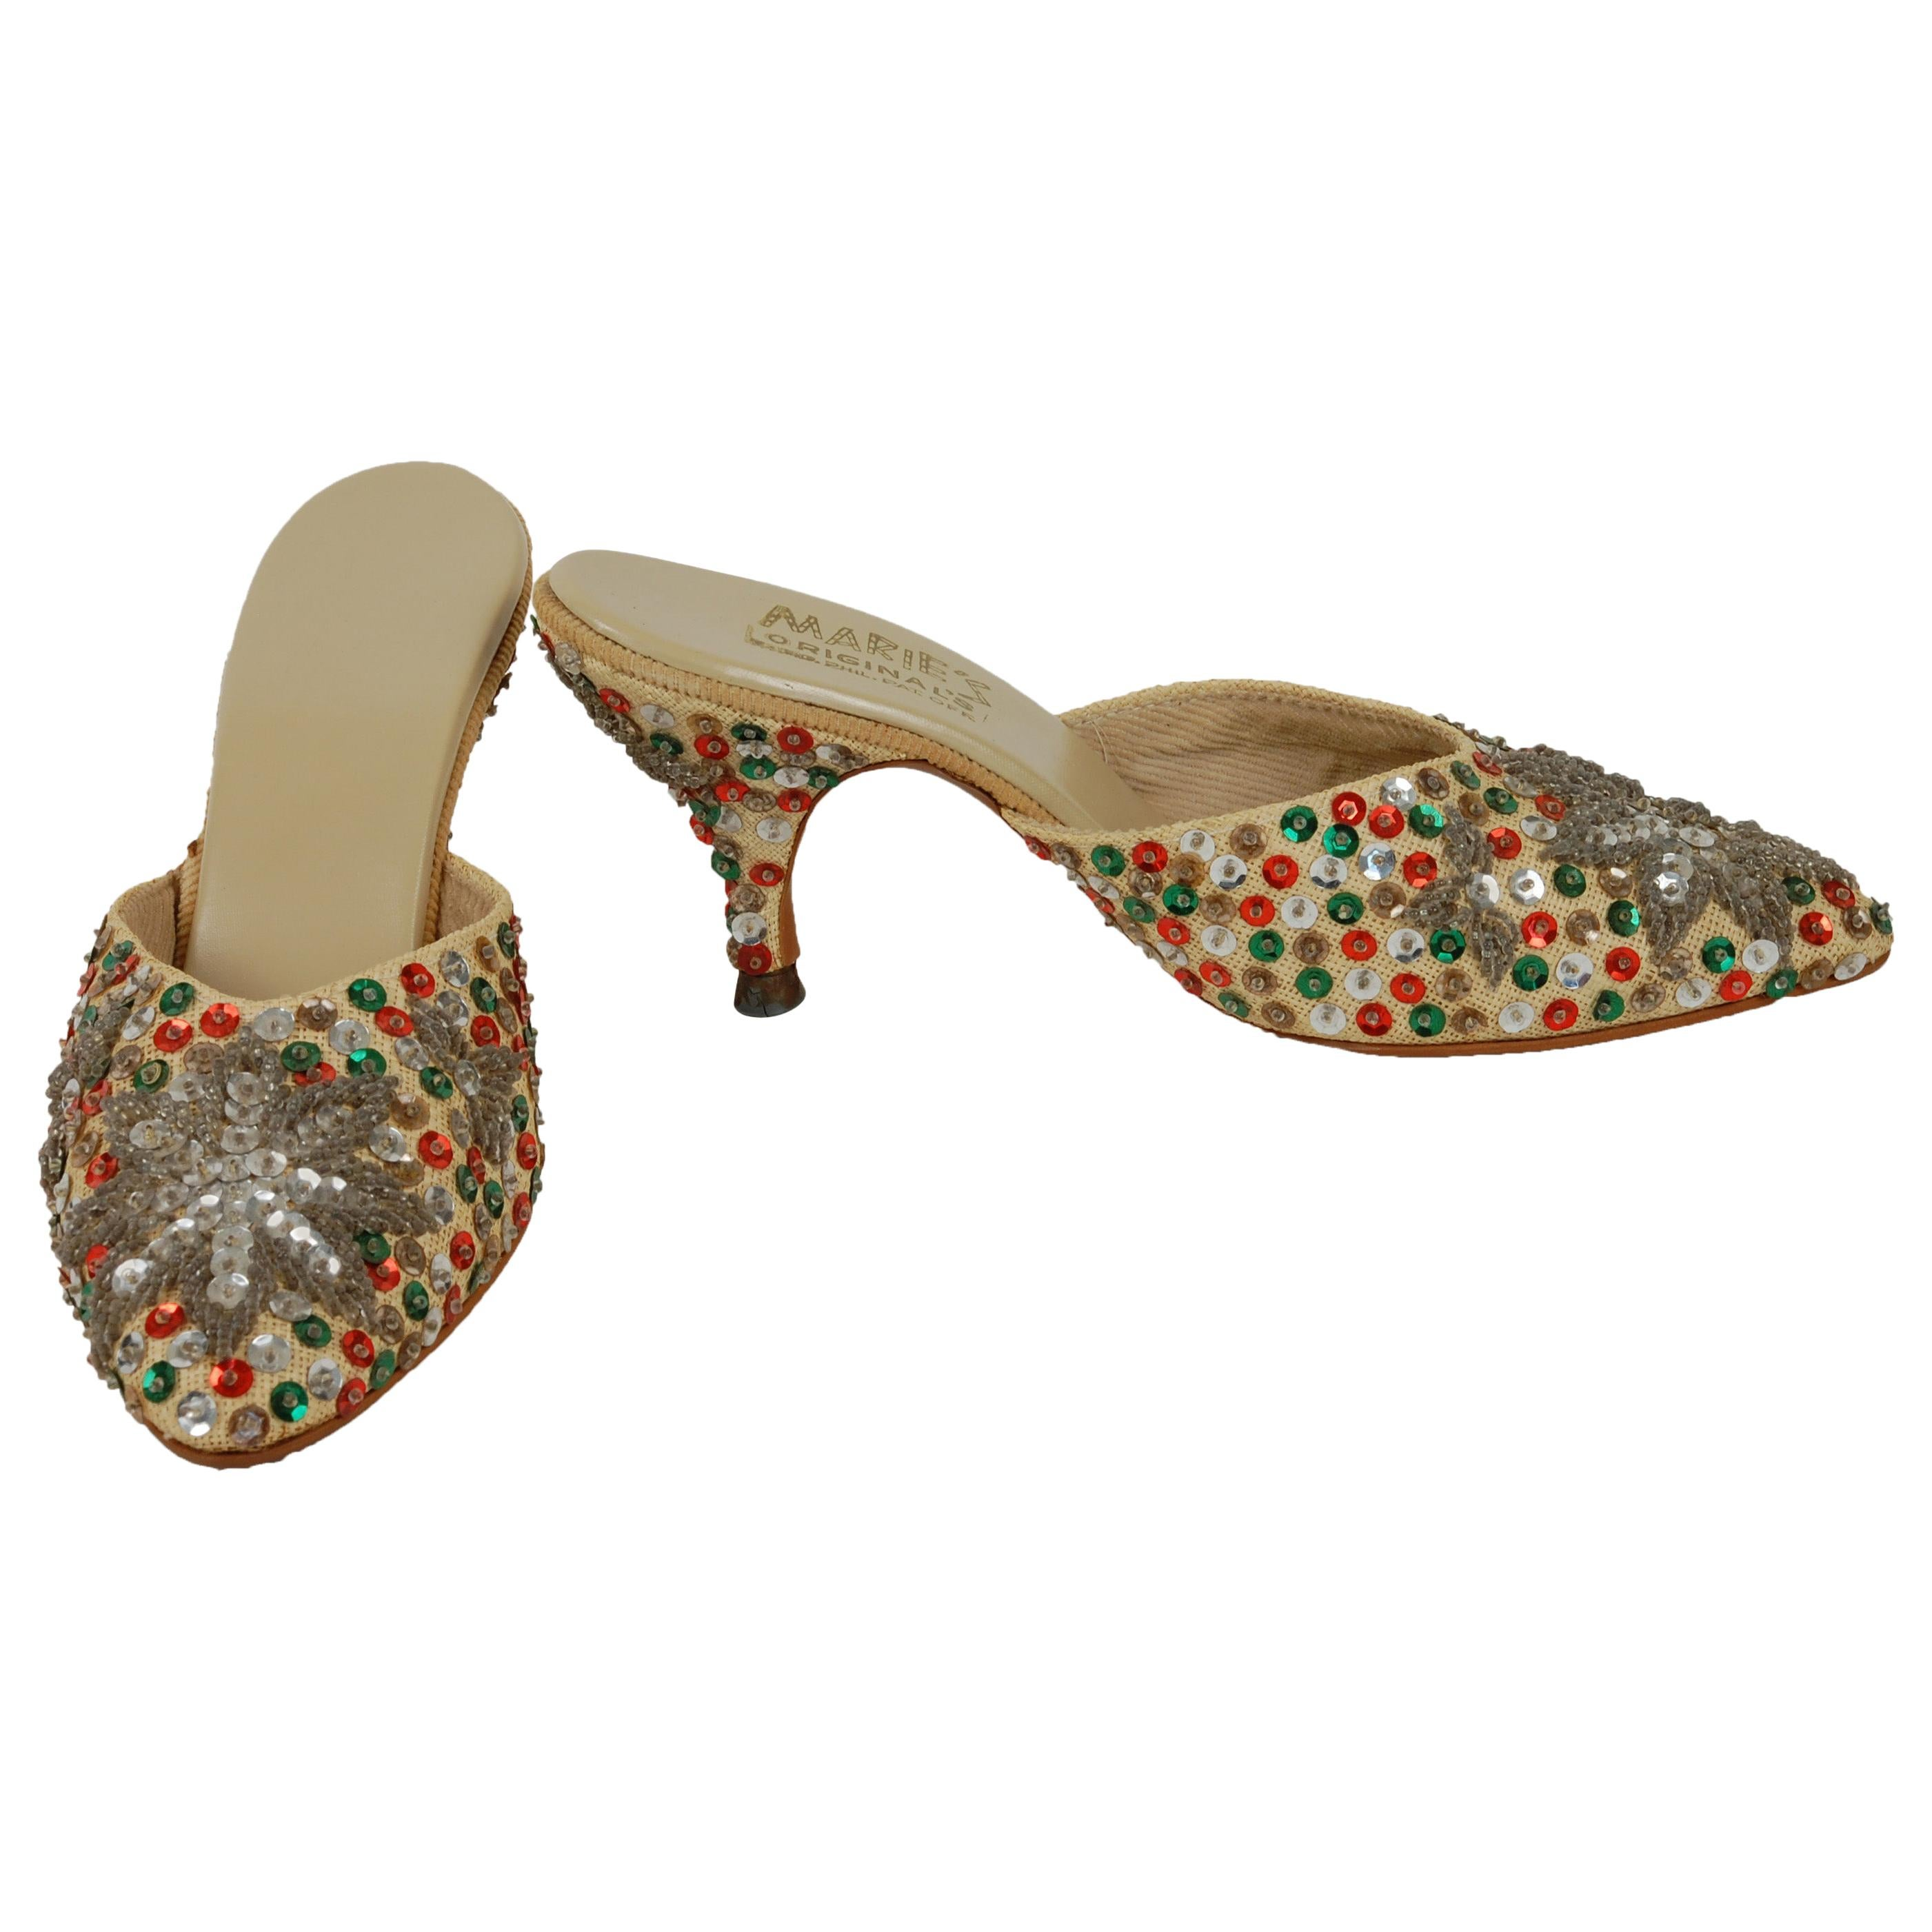 New-Old Silver Snowflake Kitten Mules with Red and Green Sequins – US 5.5, 1940s